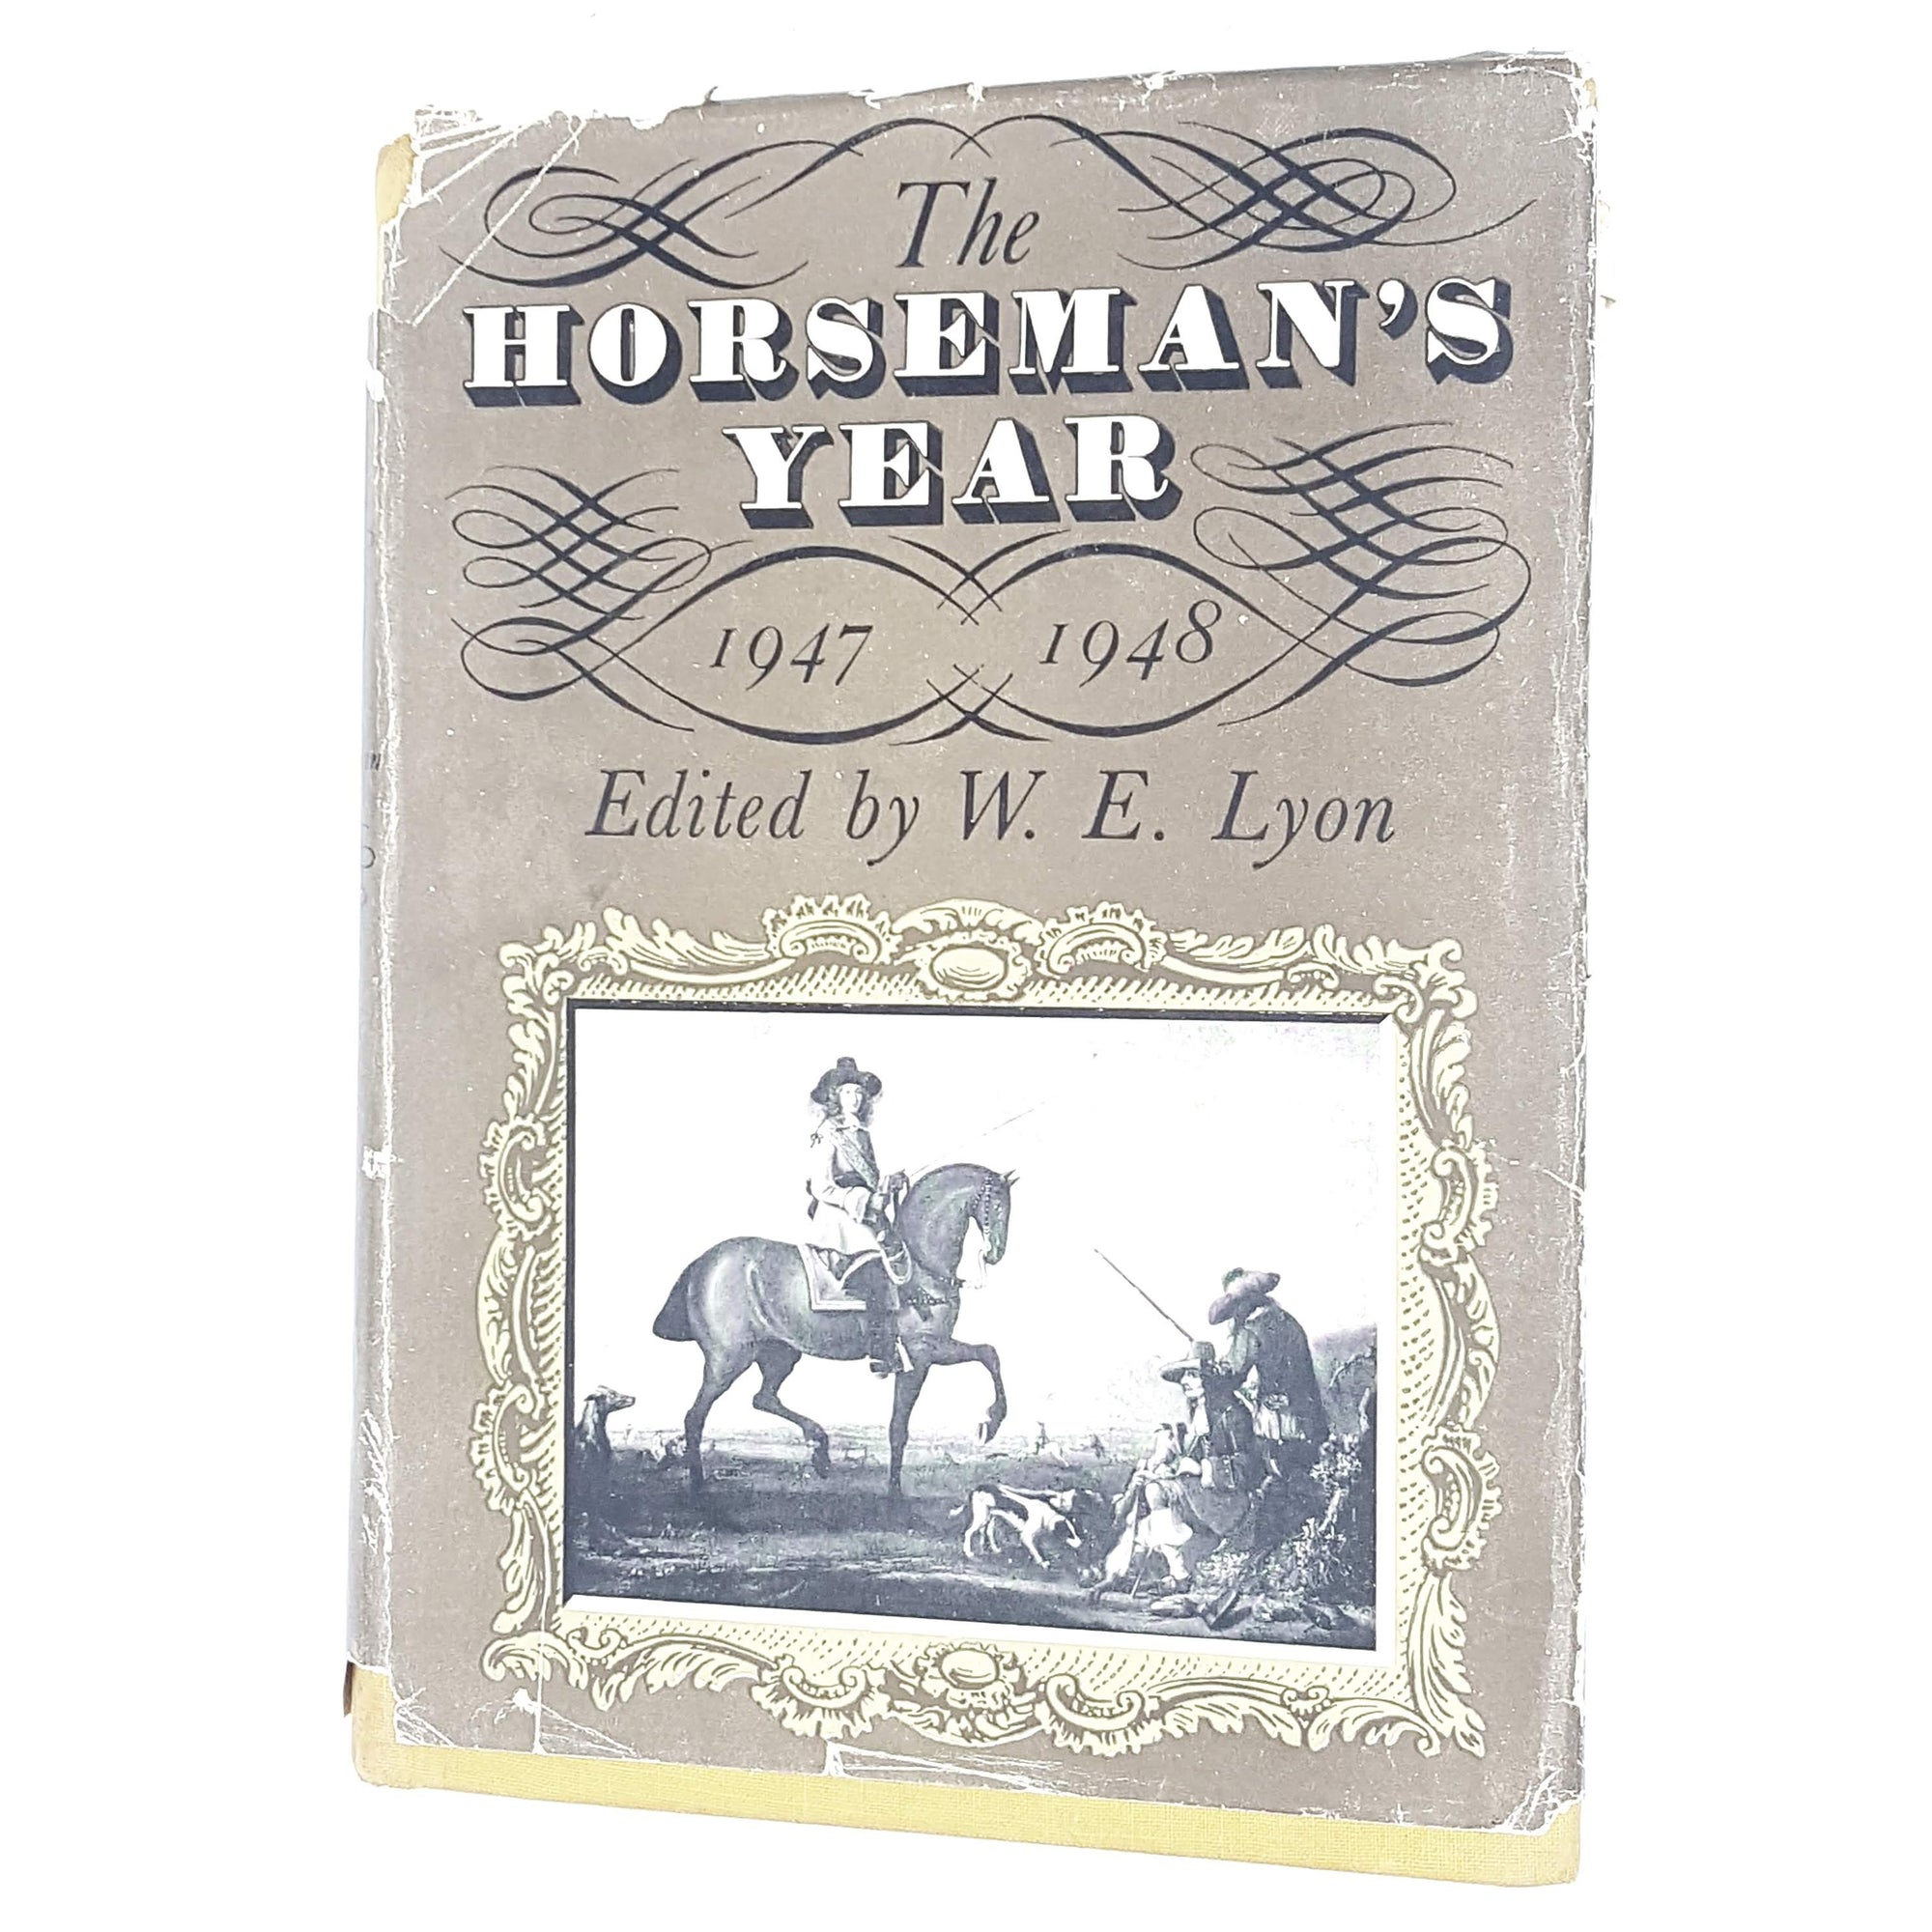 Illustrated Horseman's Year 1947 - 1948